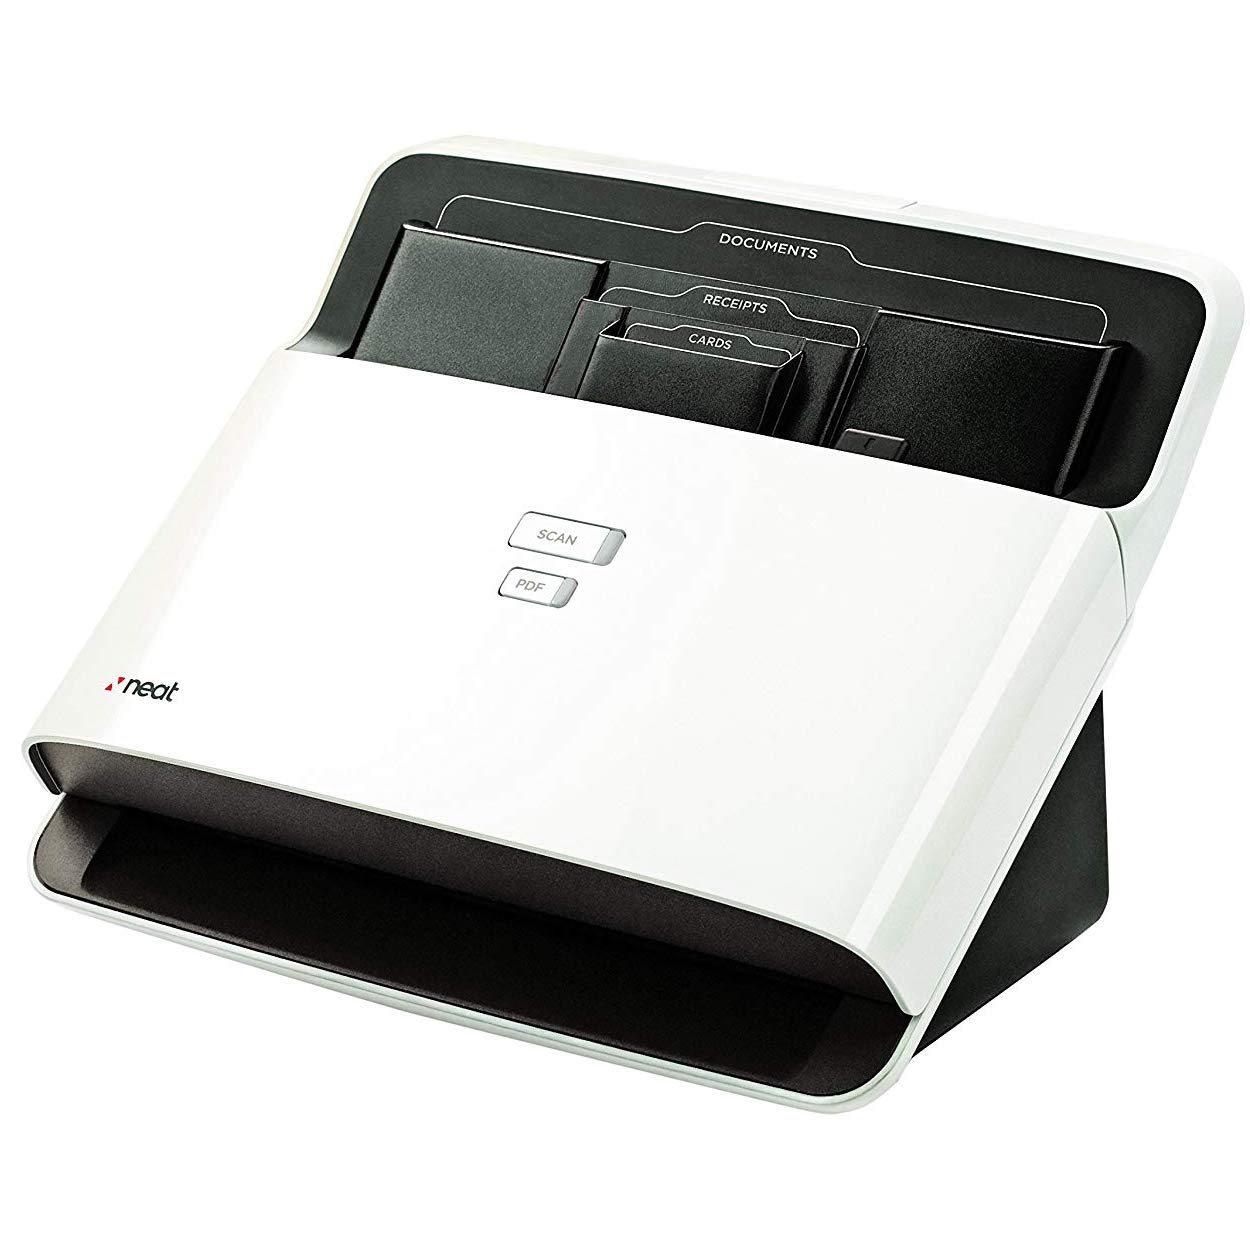 NeatDesk Desktop Document Scanner and Digital Filing System for PC and Mac by The Neat Company